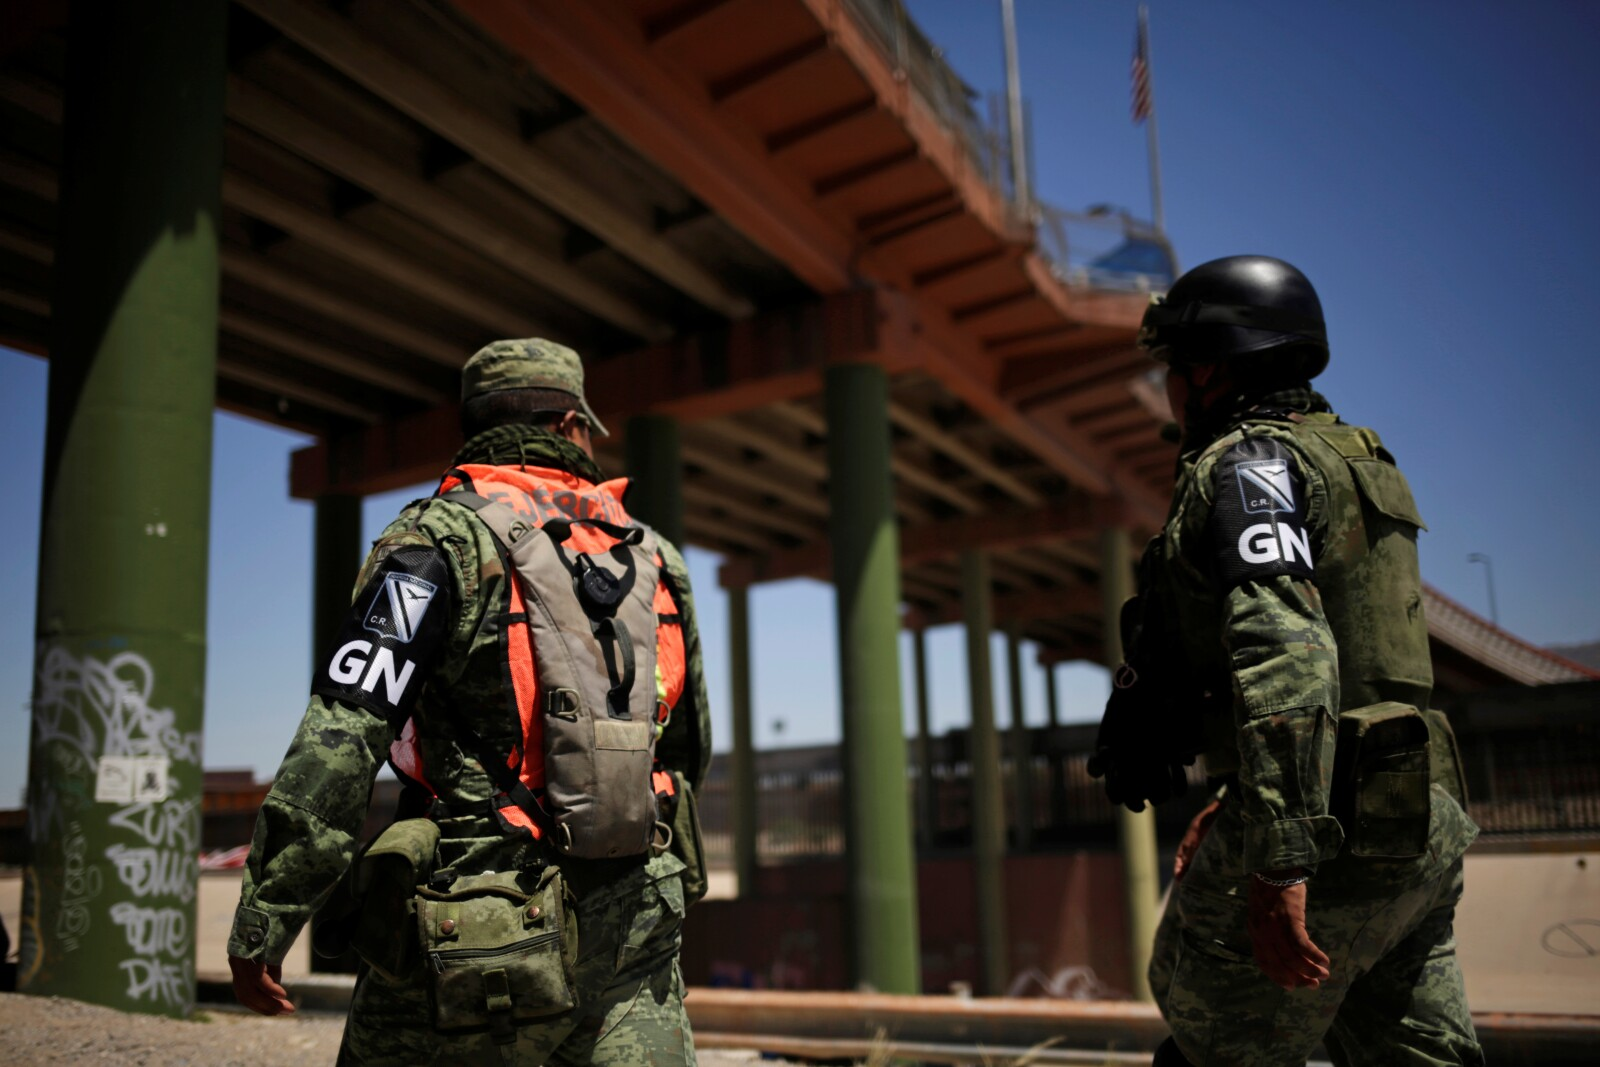 Members of Mexico's National Guard patrol the border between Mexico and the U.S. as part of an ongoing operation to prevent migrants from crossing illegally into the United States, in Ciudad Juarez